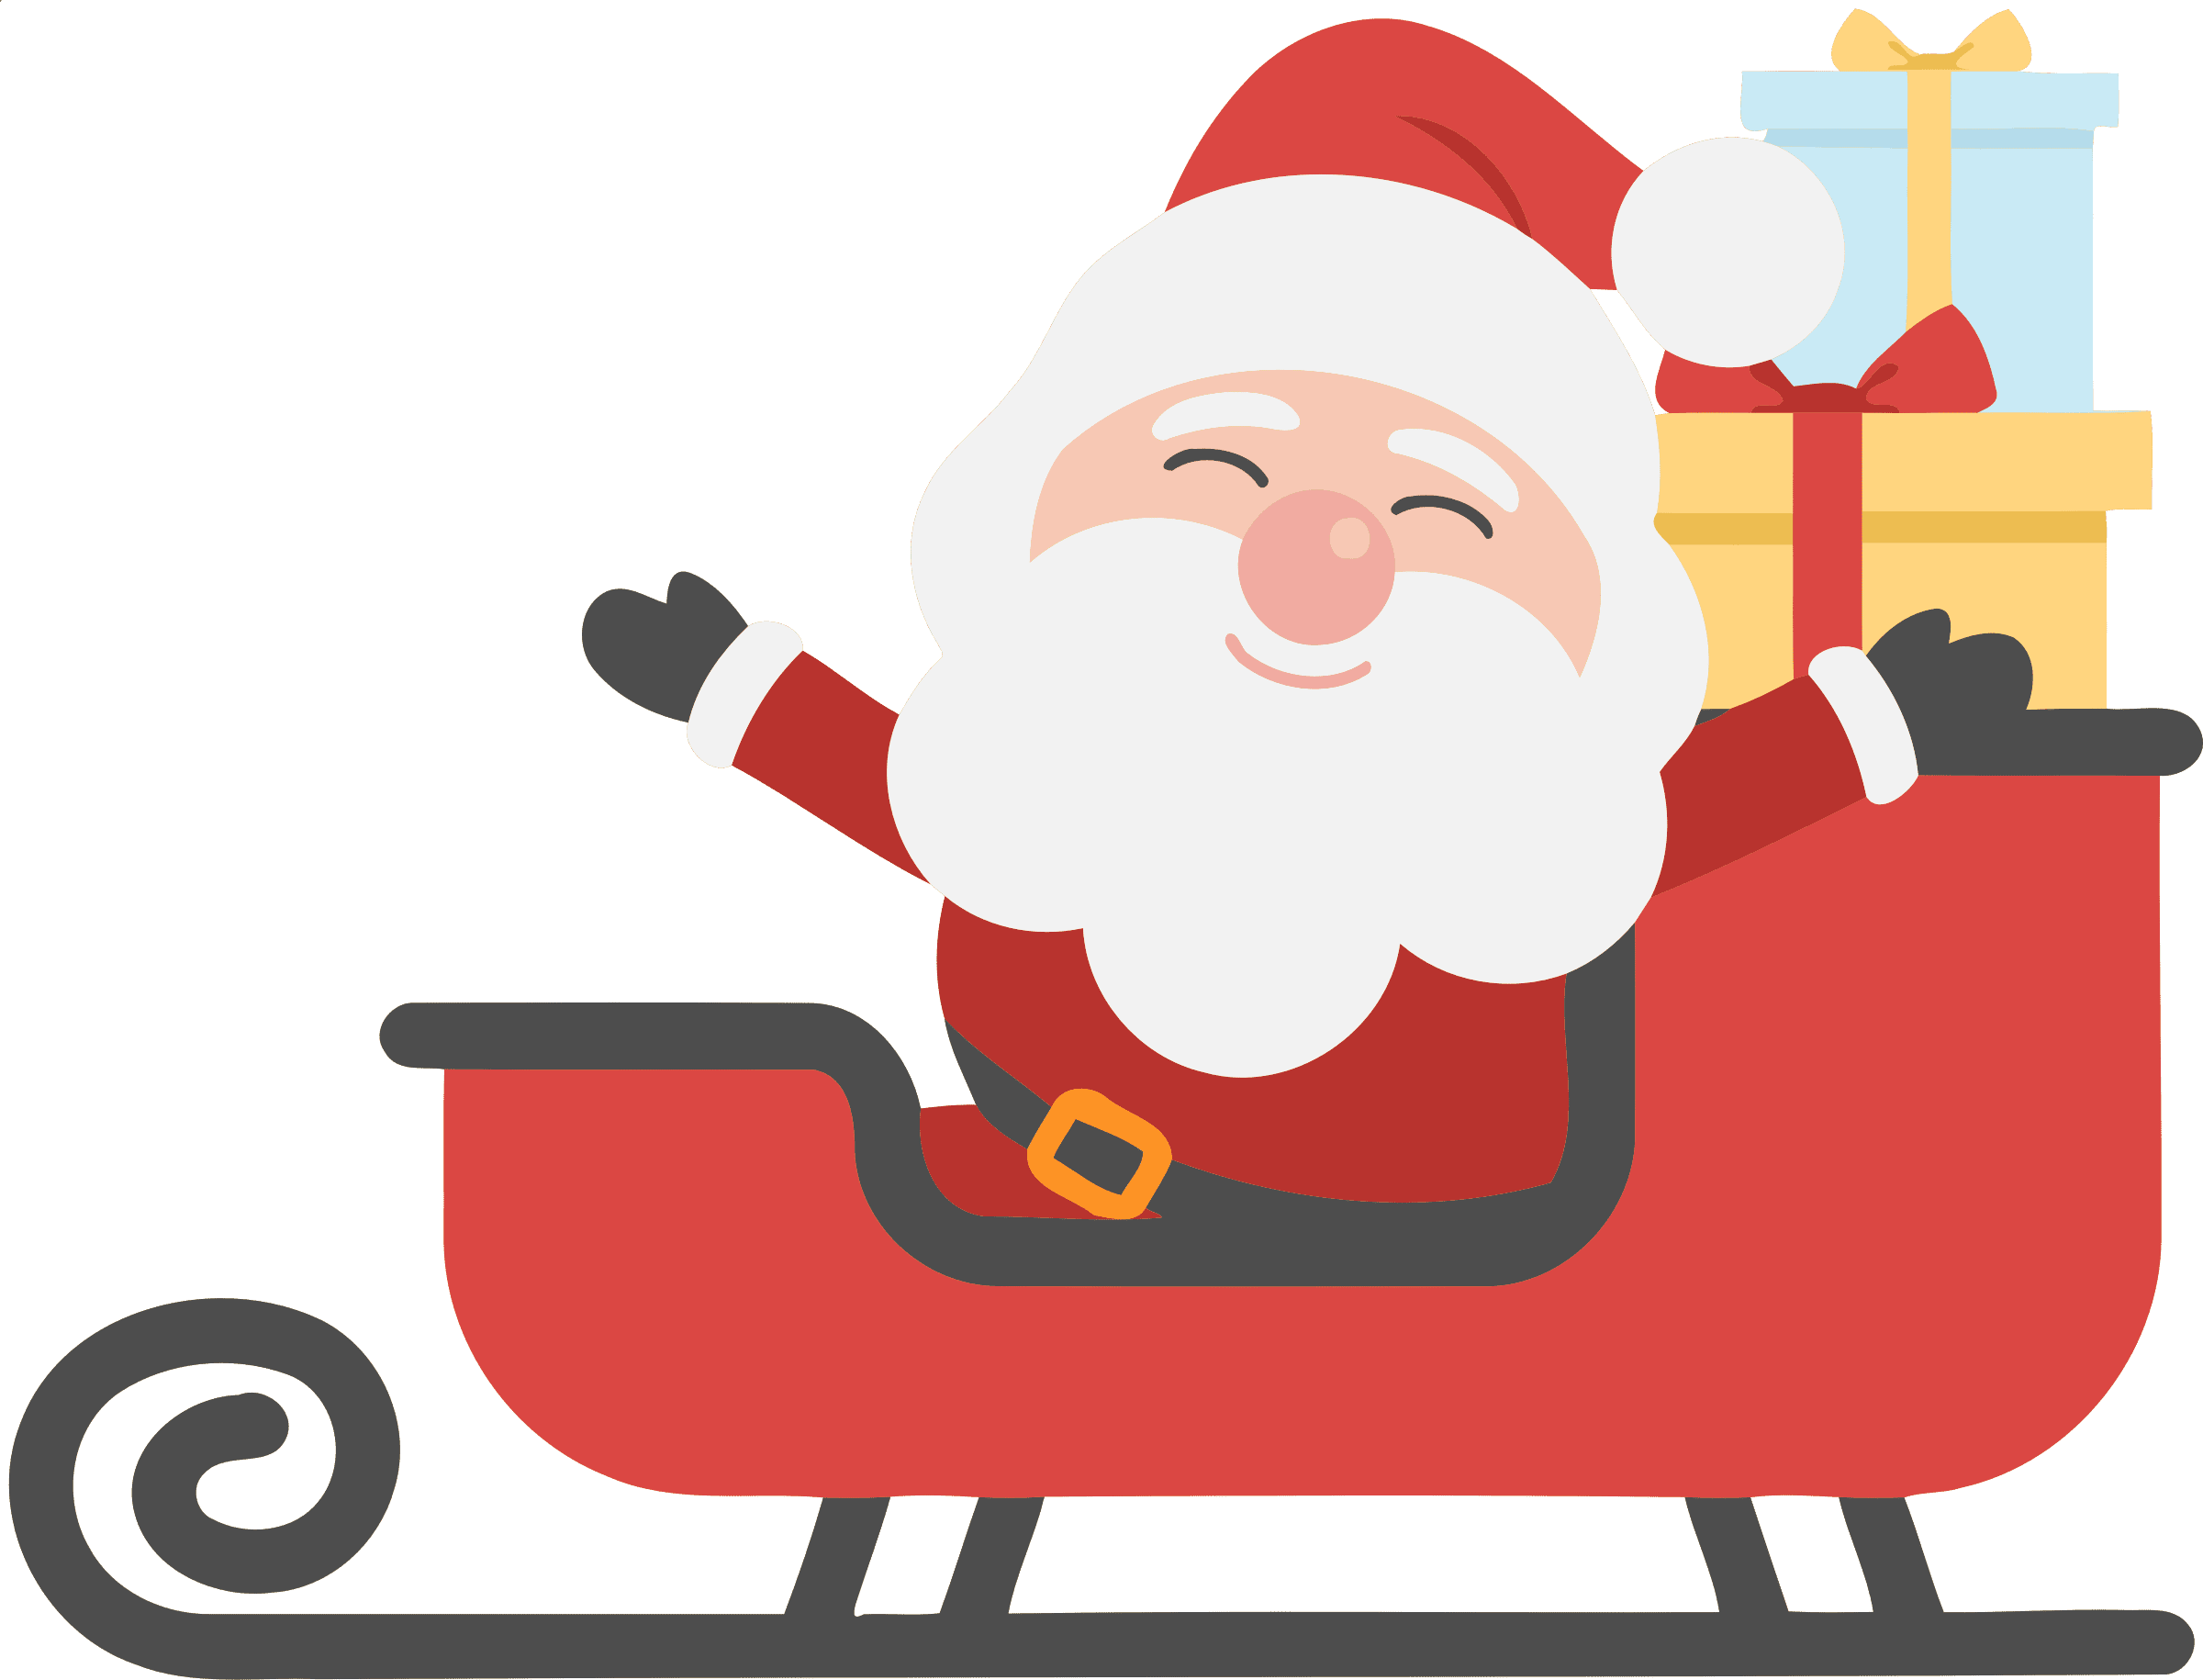 Free Santa Clipart for Your Holiday Projects